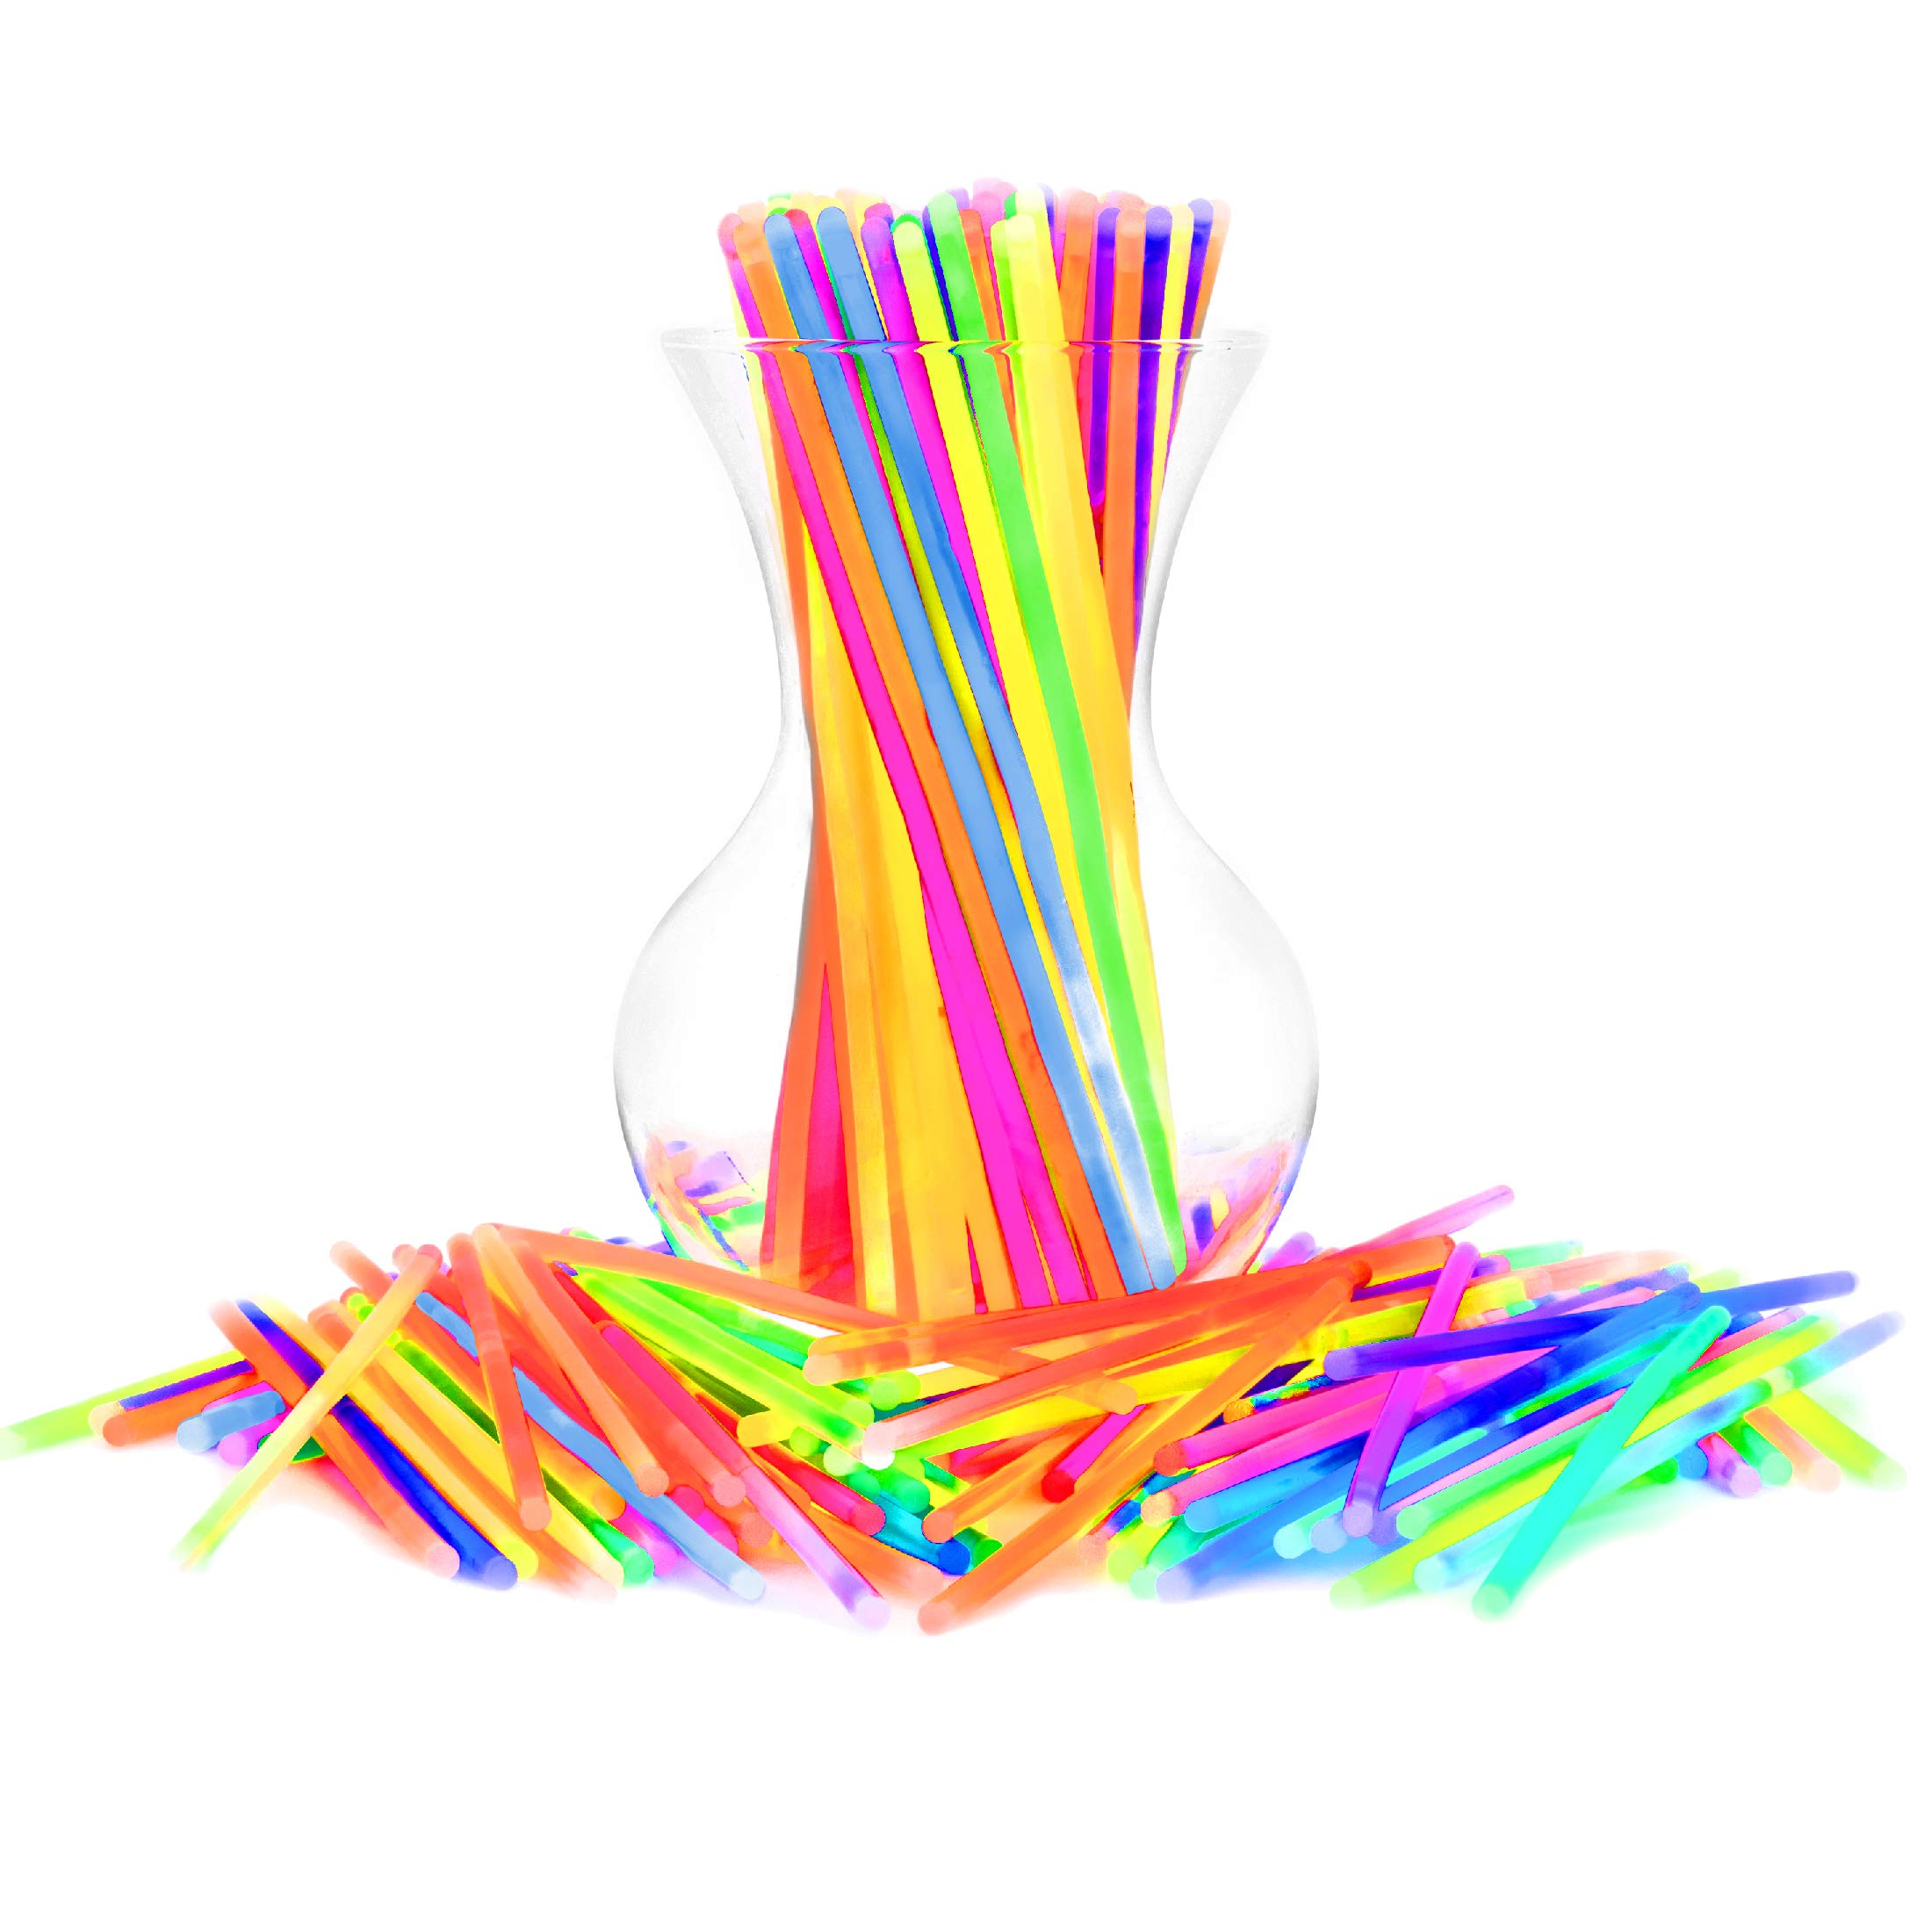 Glow Sticks Bulk Party Favors 400pk - 8'' Glow in the Dark Party Supplies, Light Sticks Neon Party Glow Necklaces and Bracelets for Kids or Adults